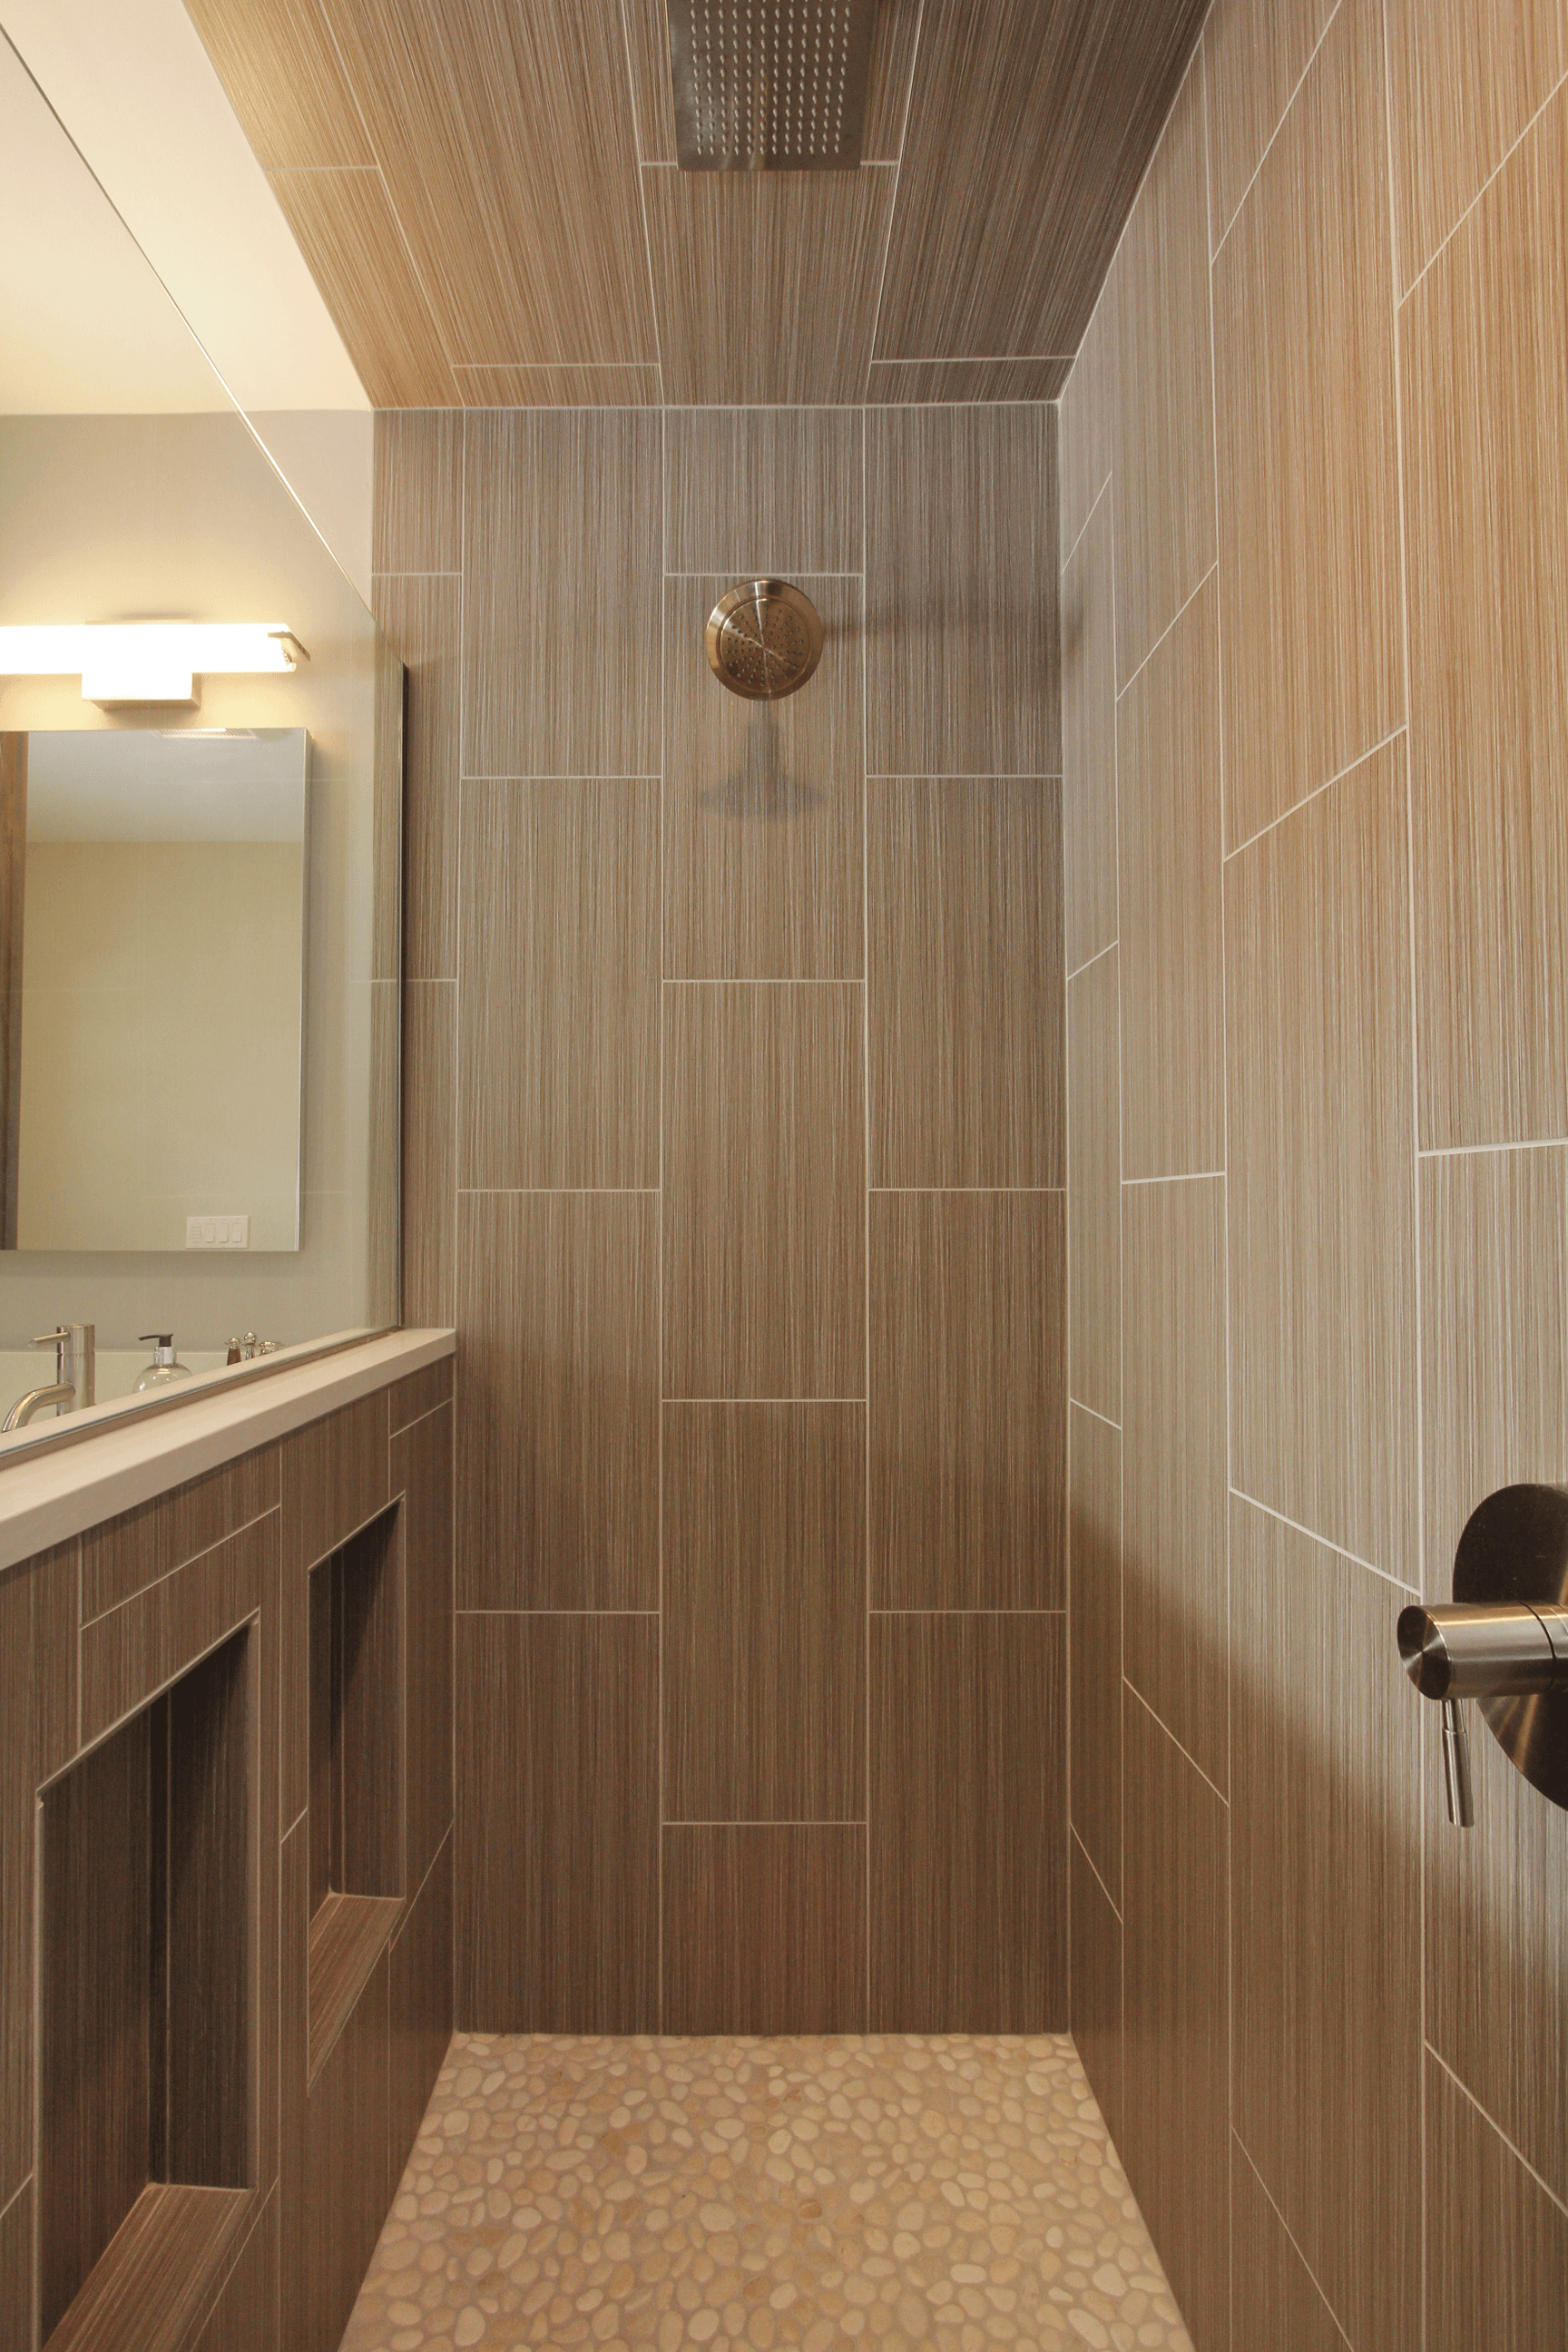 Plan Your Bathroom Remodel By Answering These Questions - Bathroom remodel help